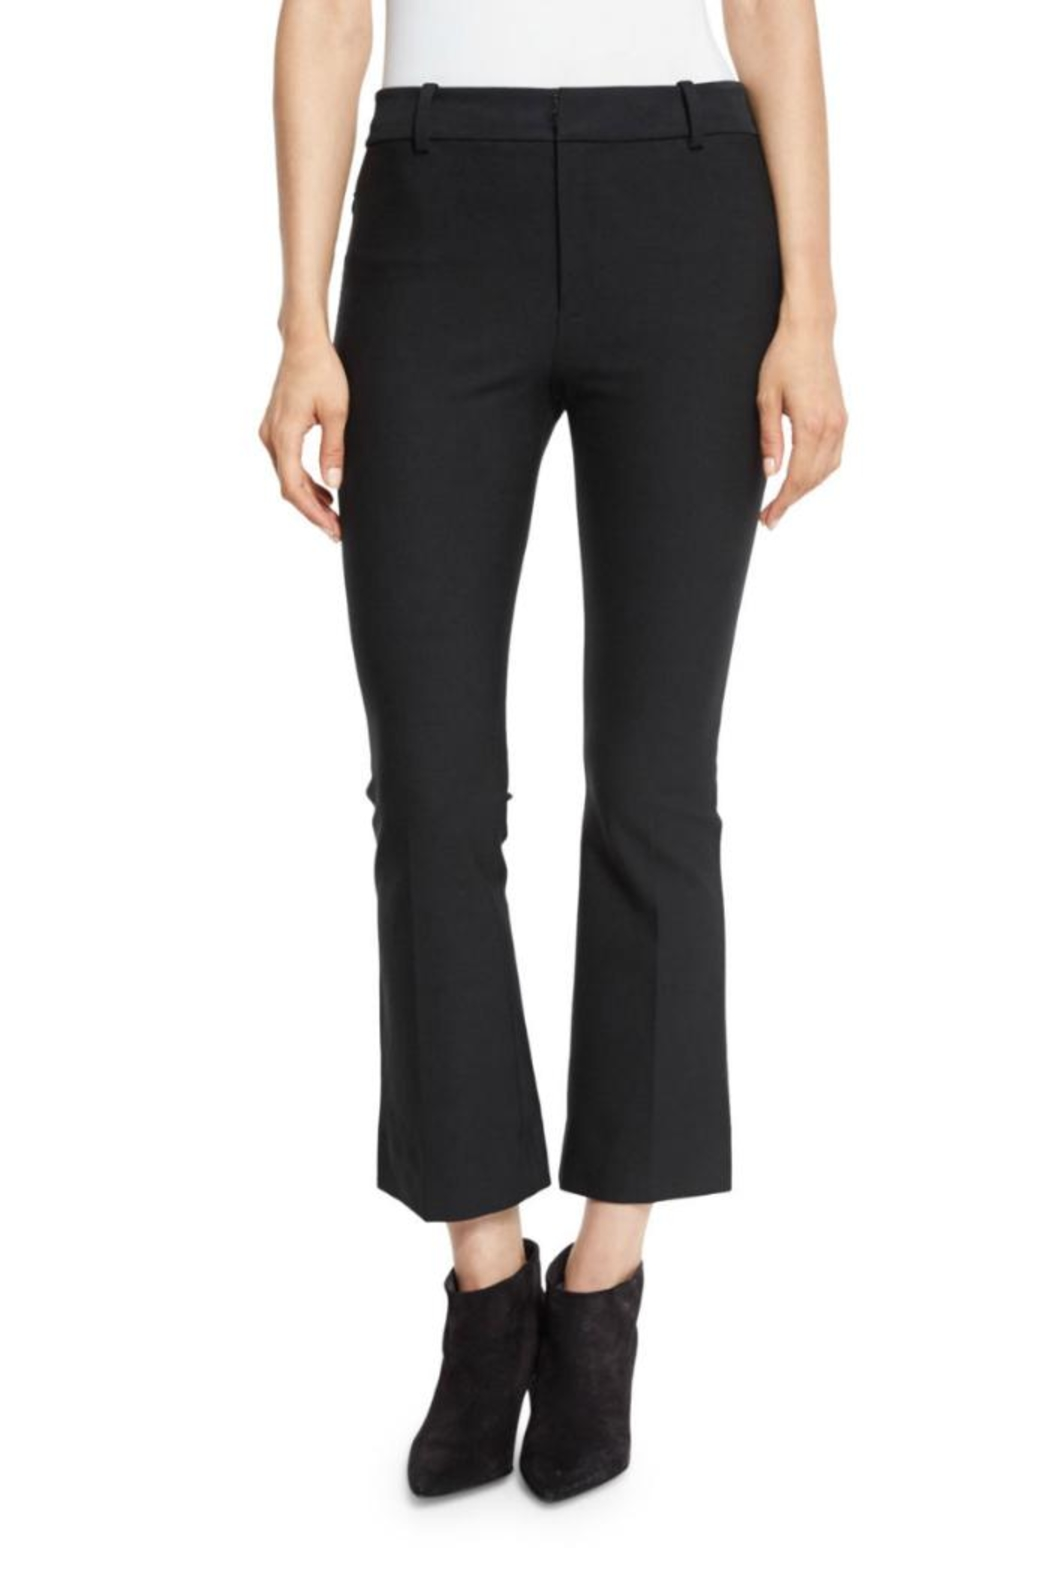 Derek Lam 10 Crosby Cropped Flare Trouser - Front Full Image